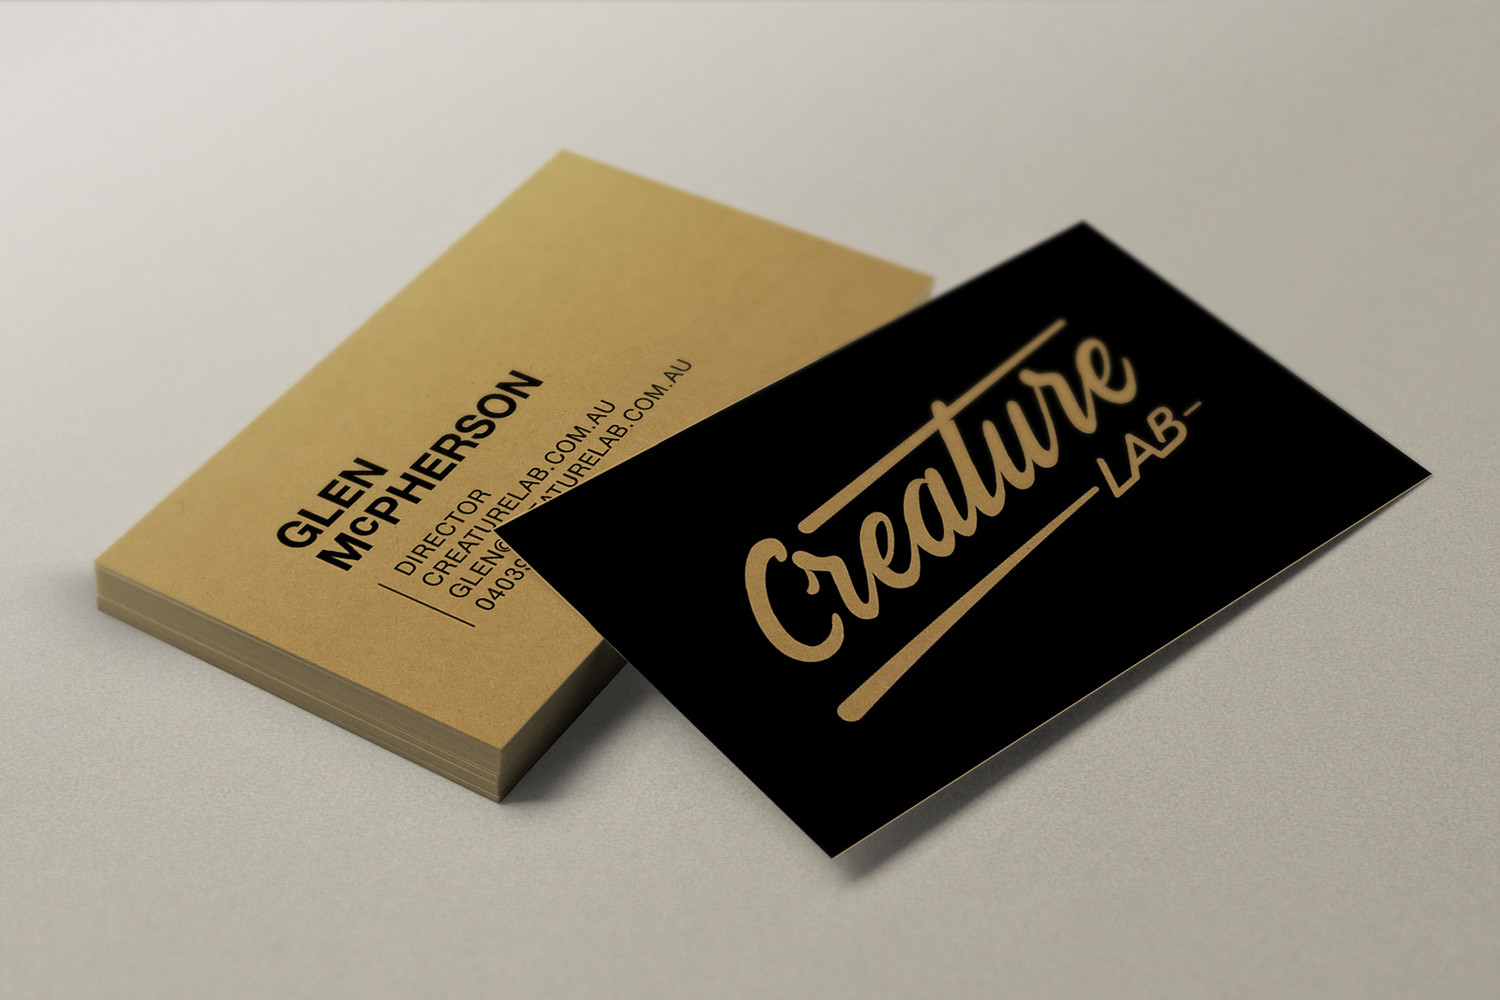 Business Cards - Gdiarra|Gdesign | From Theory To Reality